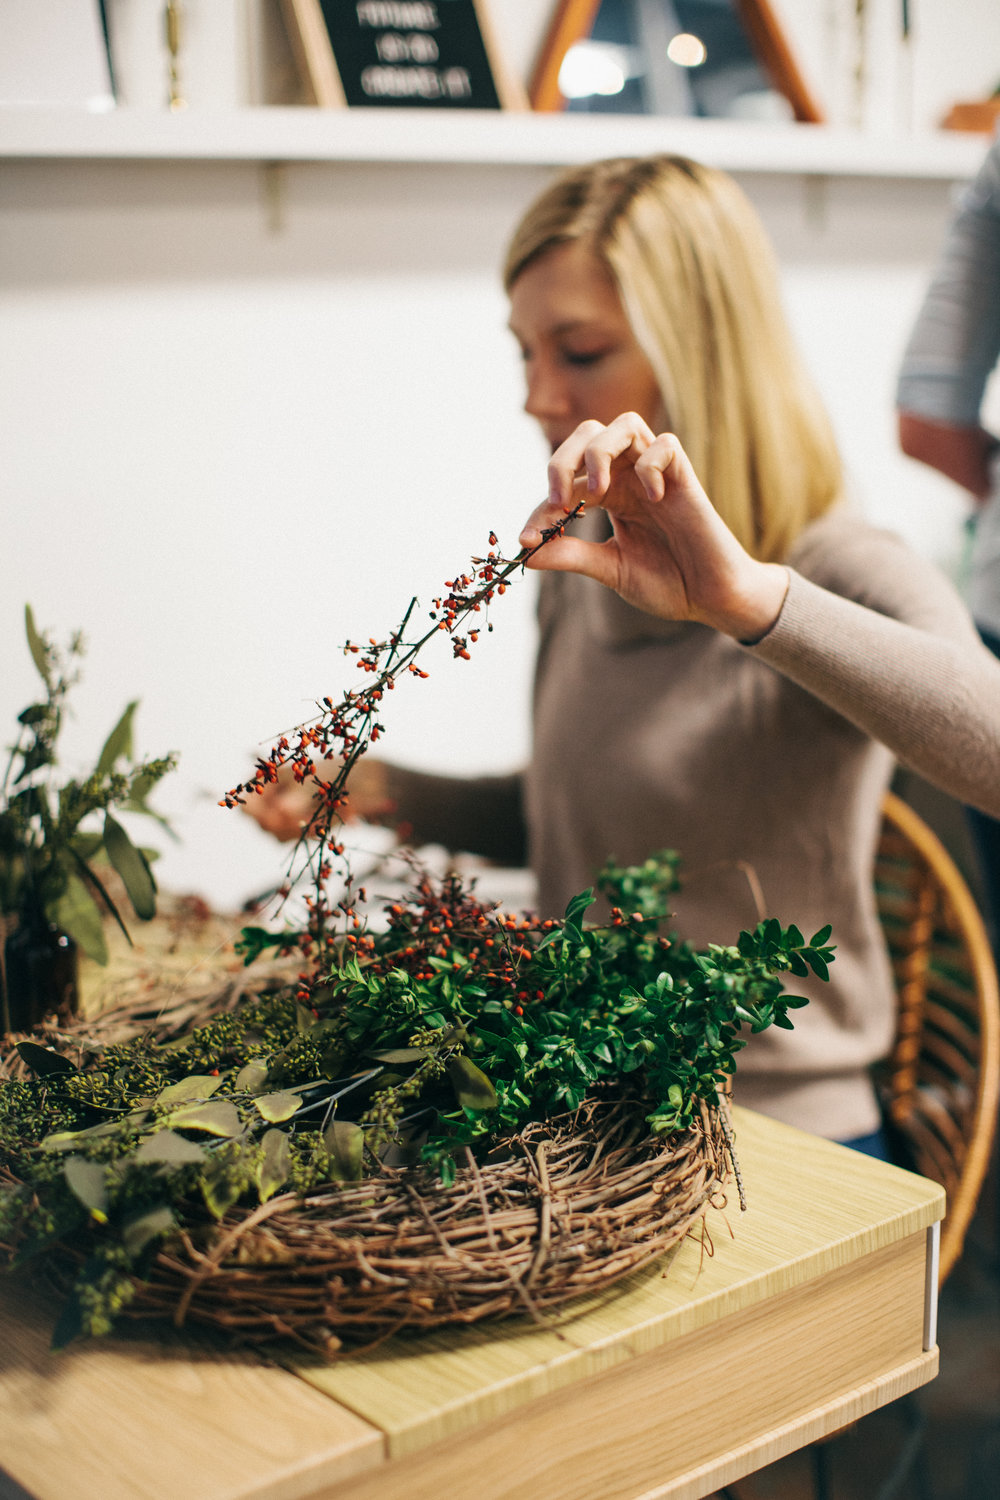 I am so thankful for this workshop because I was given a moment to slow down, be present, create, and connect with those around me. Holiday Wreath Making Workshop by Lyndsey Parham